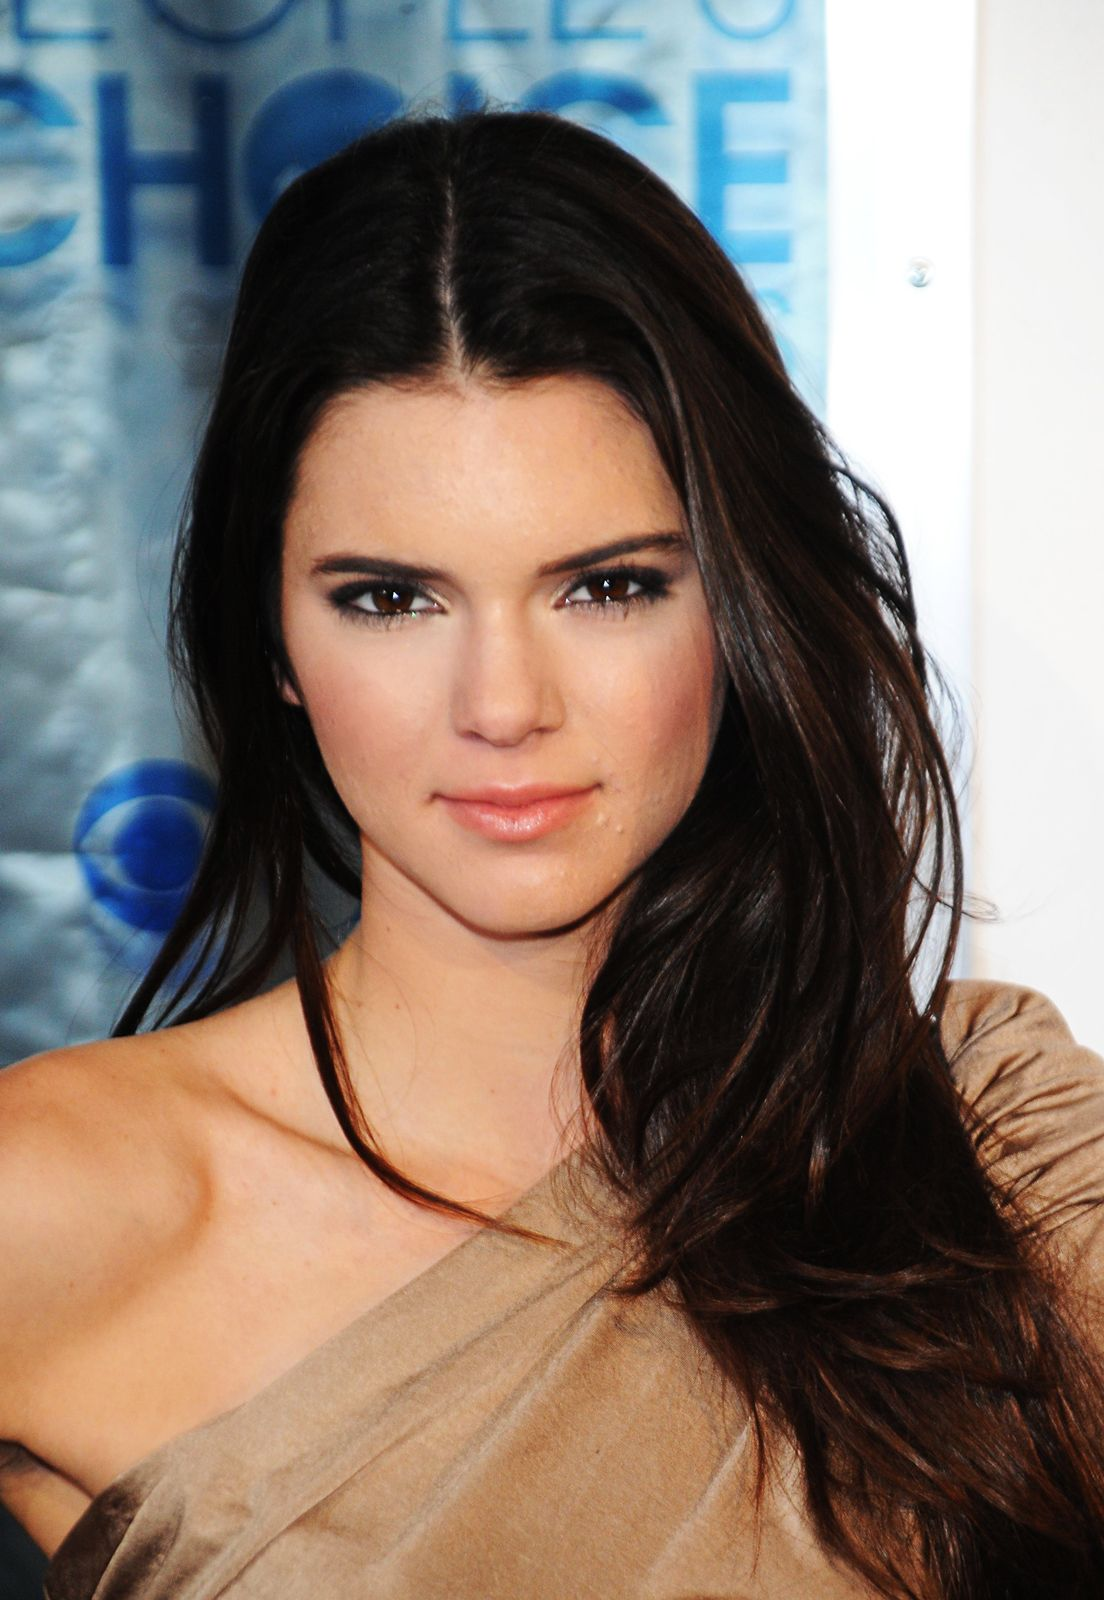 The Kendall Jenner Primer: Why We Are Watching Her #refinery29  http://www.refinery29.com/2014/05/68026/kendall-jenner-career#slide7  Again, Jenner made her way into glossies, appearing on the cover of American Cheerleader. She and Kylie both cheered in high school.